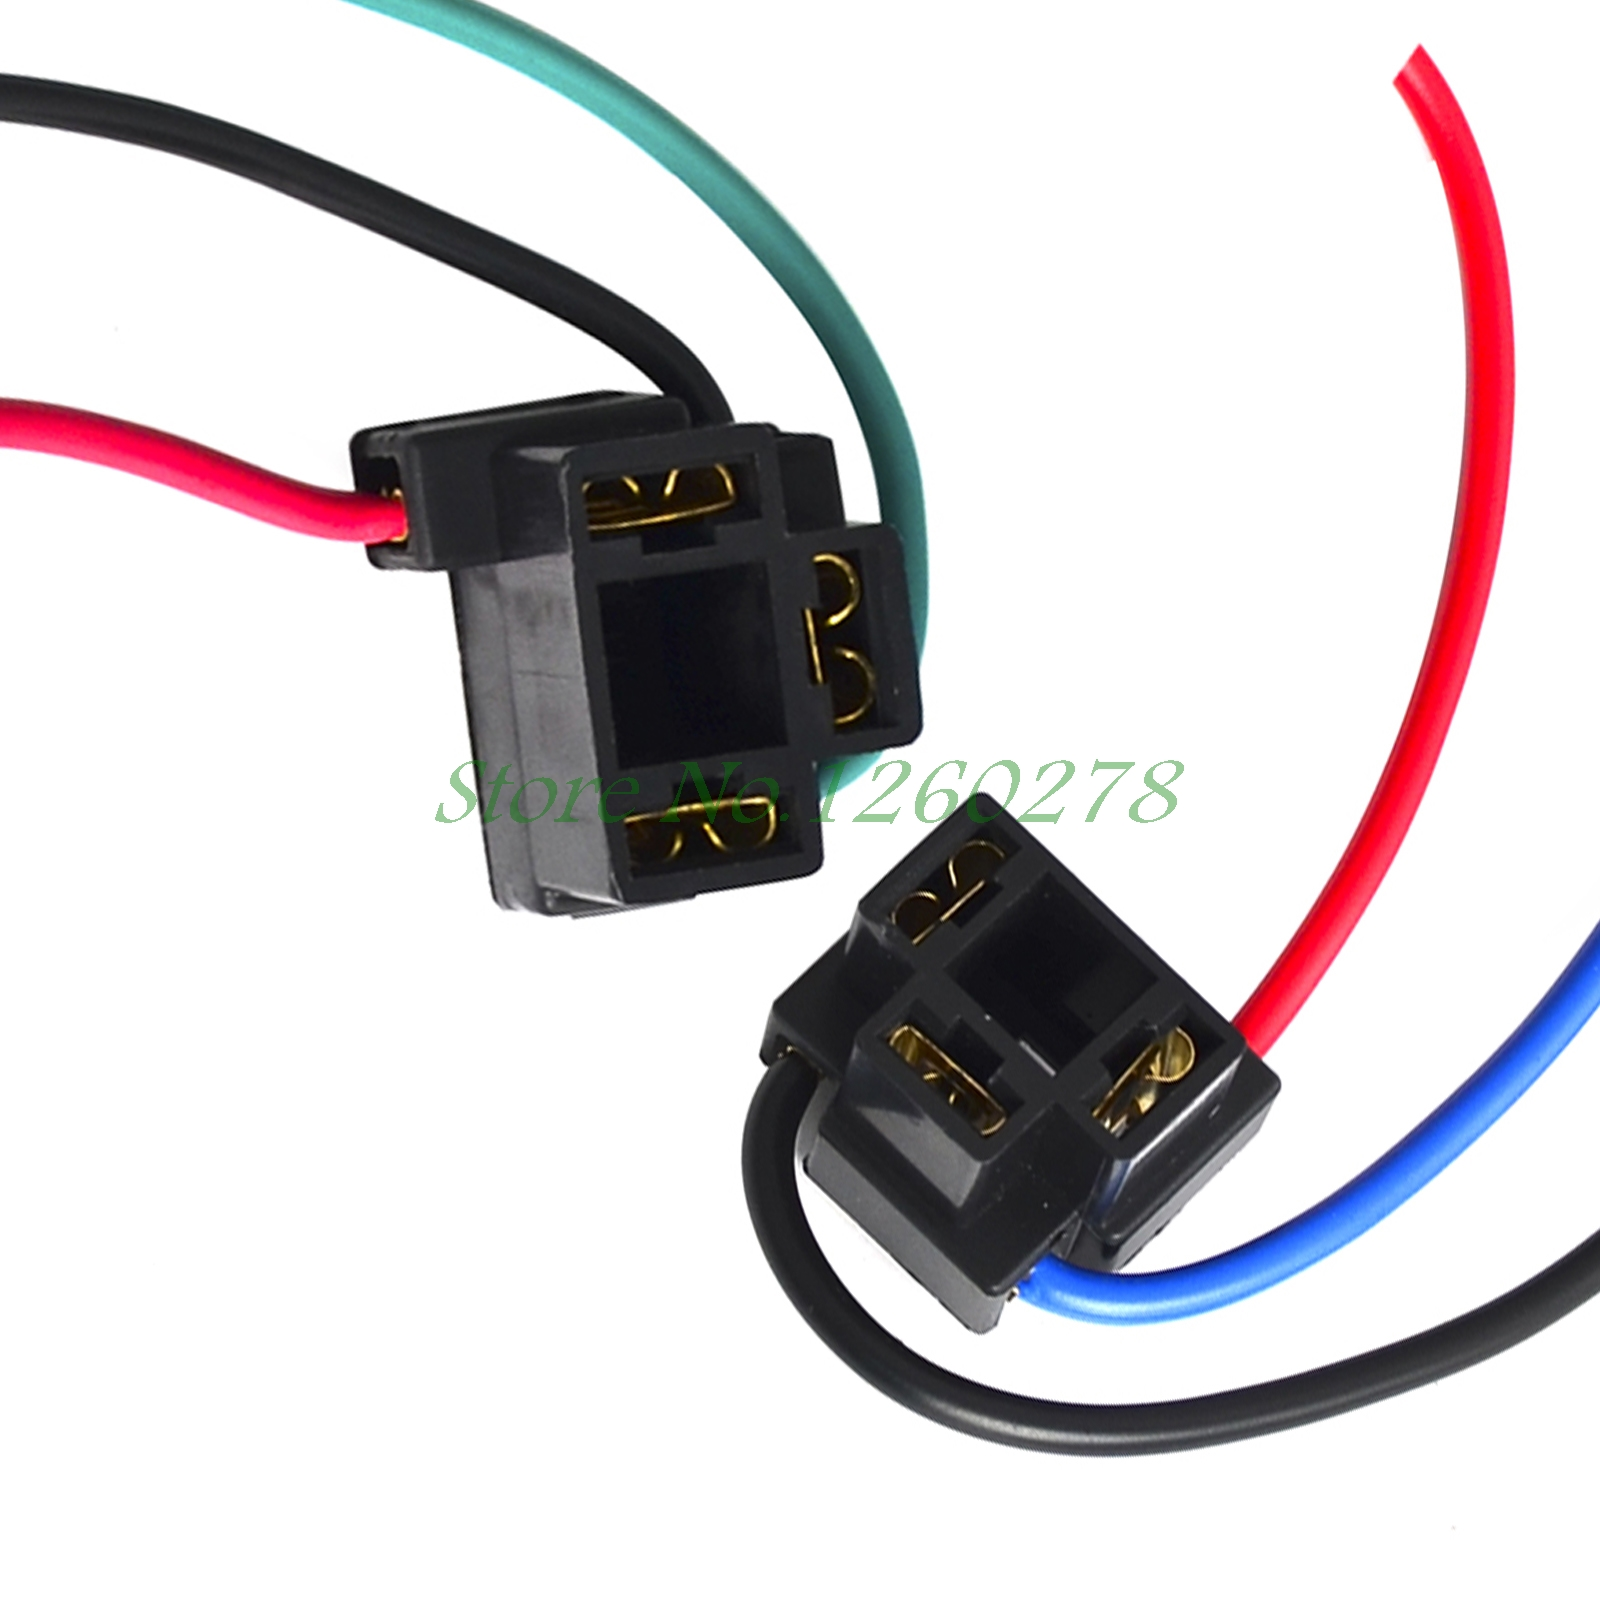 Bulb Socket H4 Wiring Diagram Diagrams Instructions Arb Harness 2pcs Female Adapter Sockets Wire Connector Rh Aliexpress